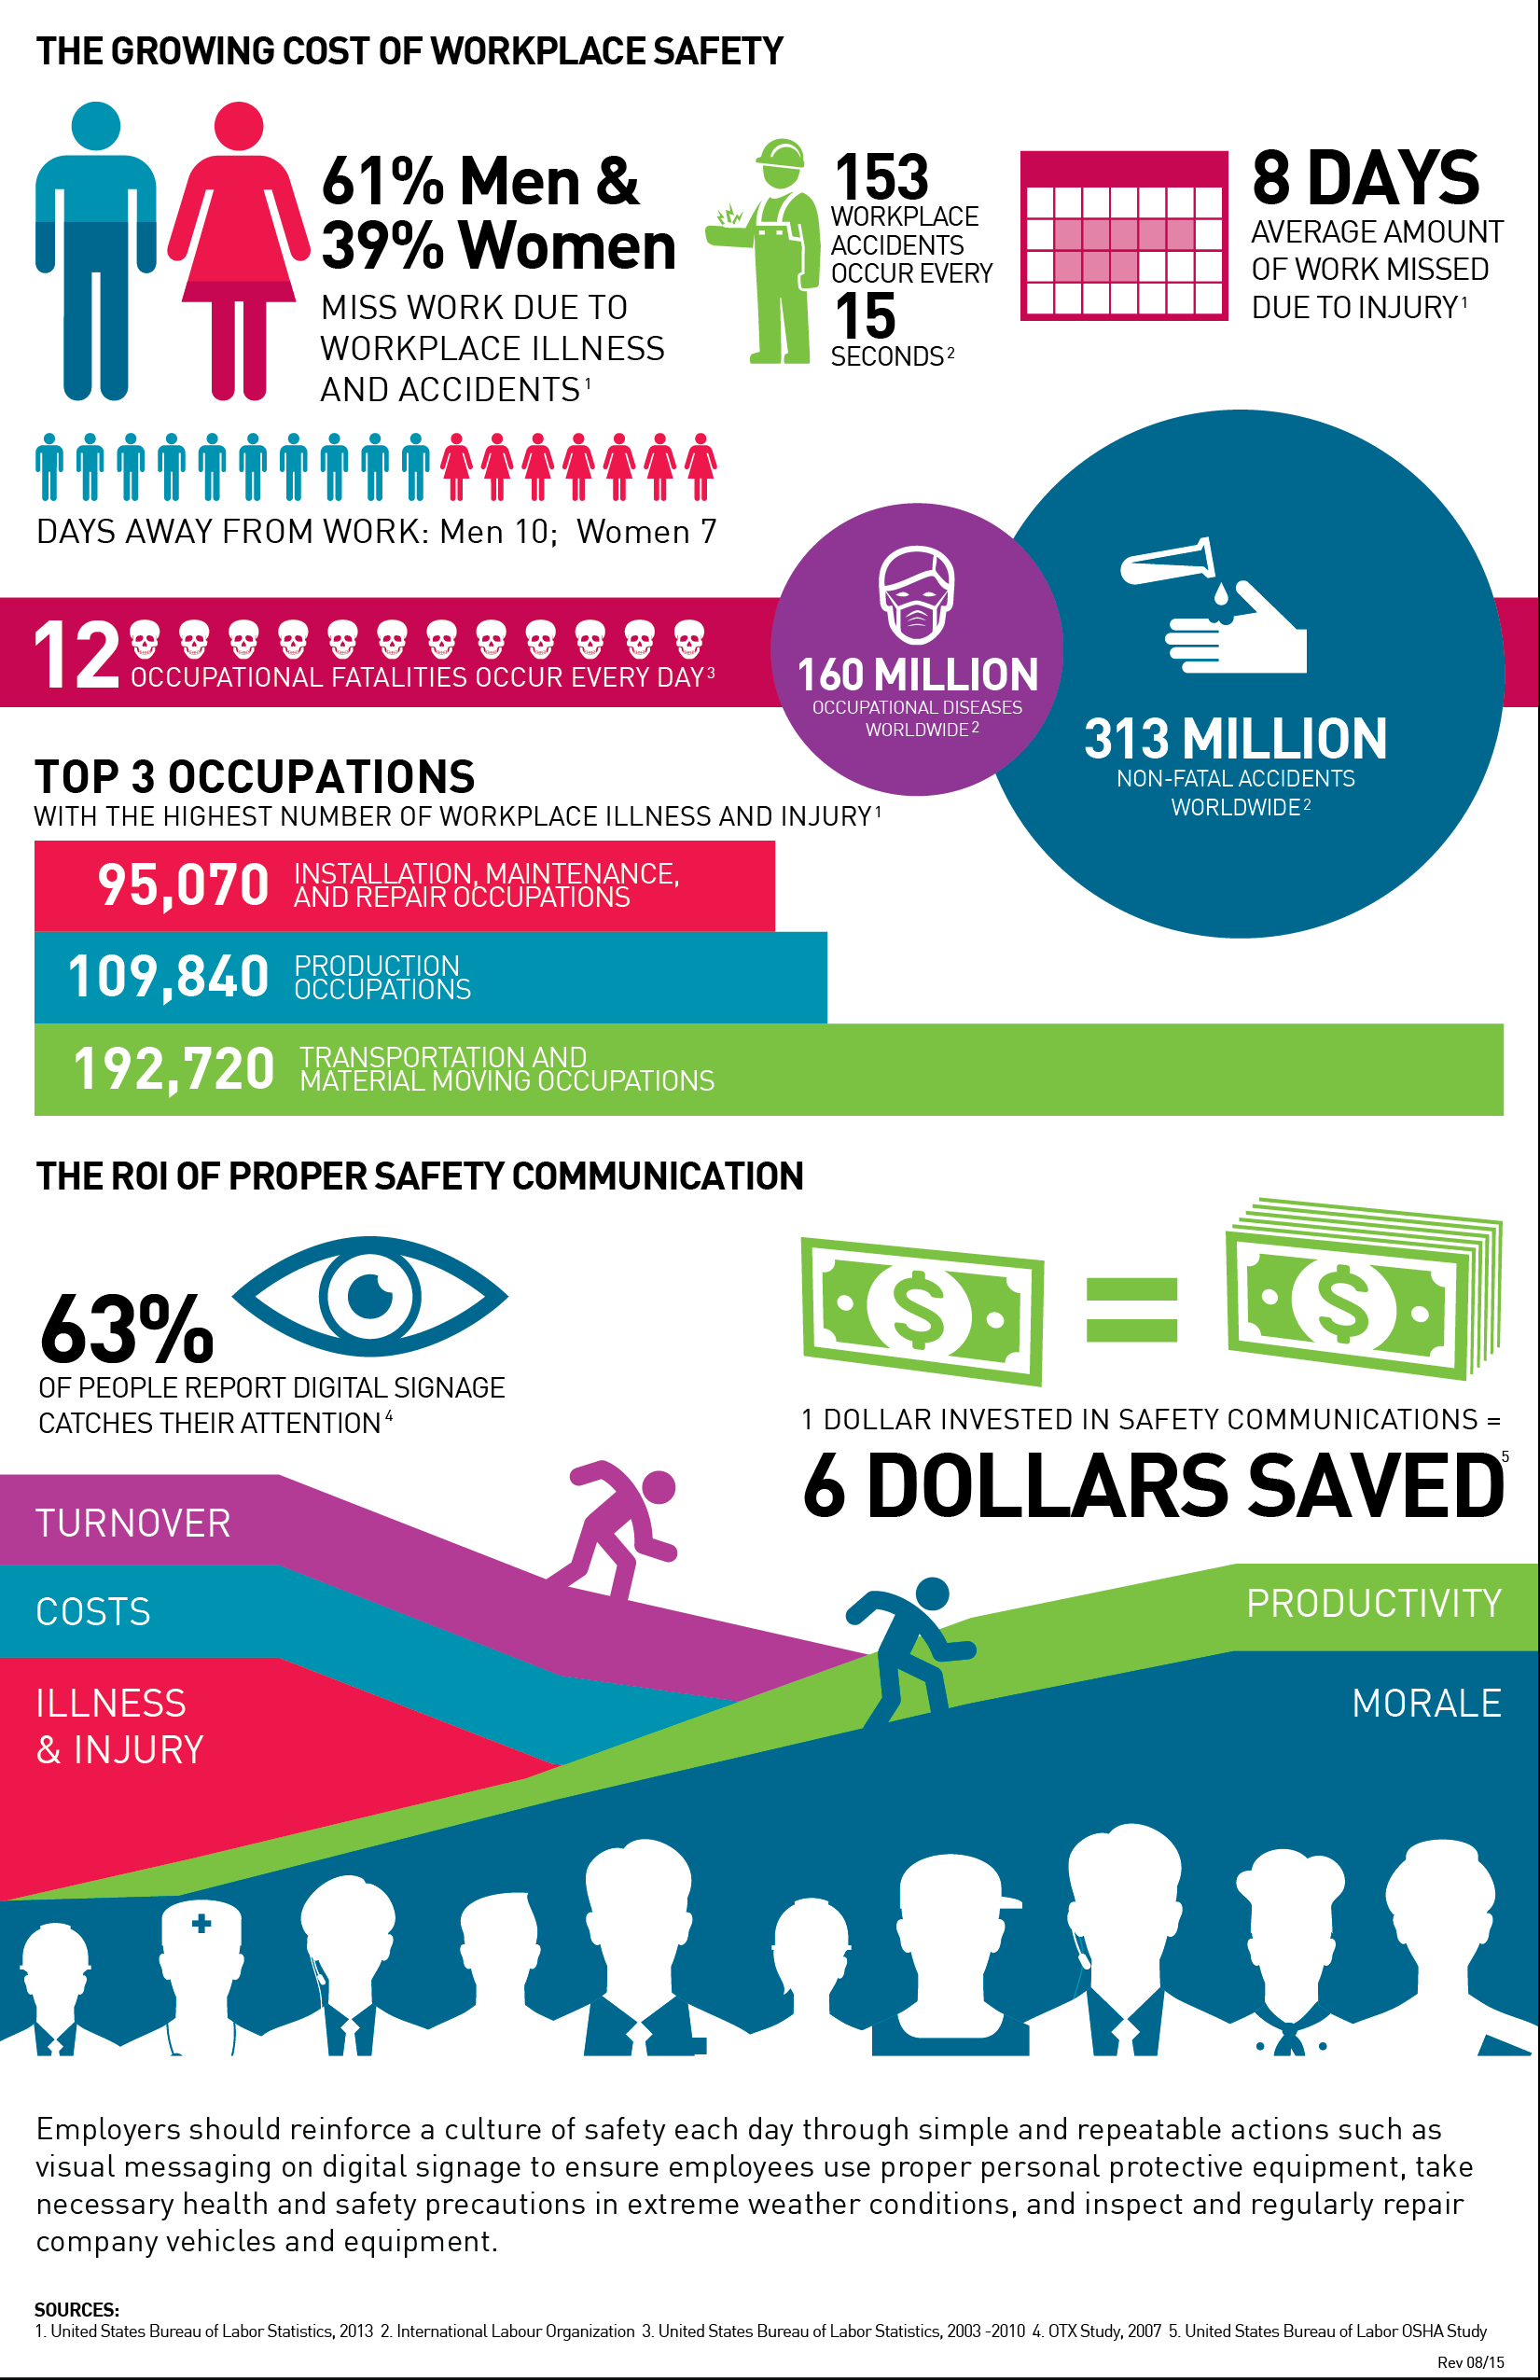 Excerpt from the Cost of Workplace Safety Infographic from  RMG Networks -